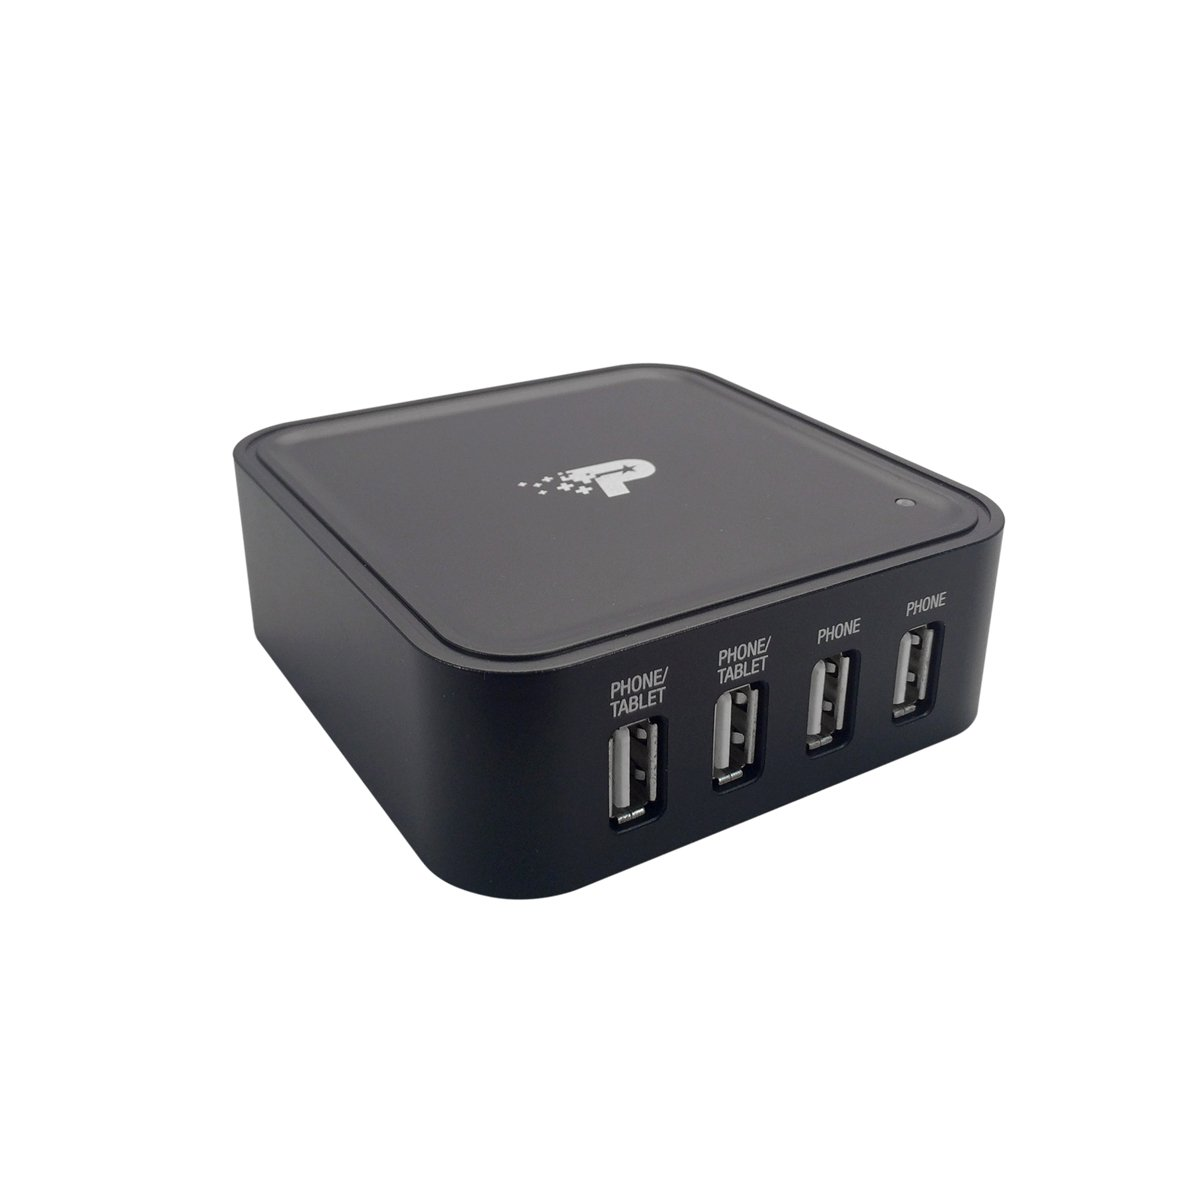 Patriot FUEL Station Mini High-Speed 4-Port Mobile Device Charger with Circuit Protection - Retail Packaging - Black снегоуборщик patriot ps 710 е